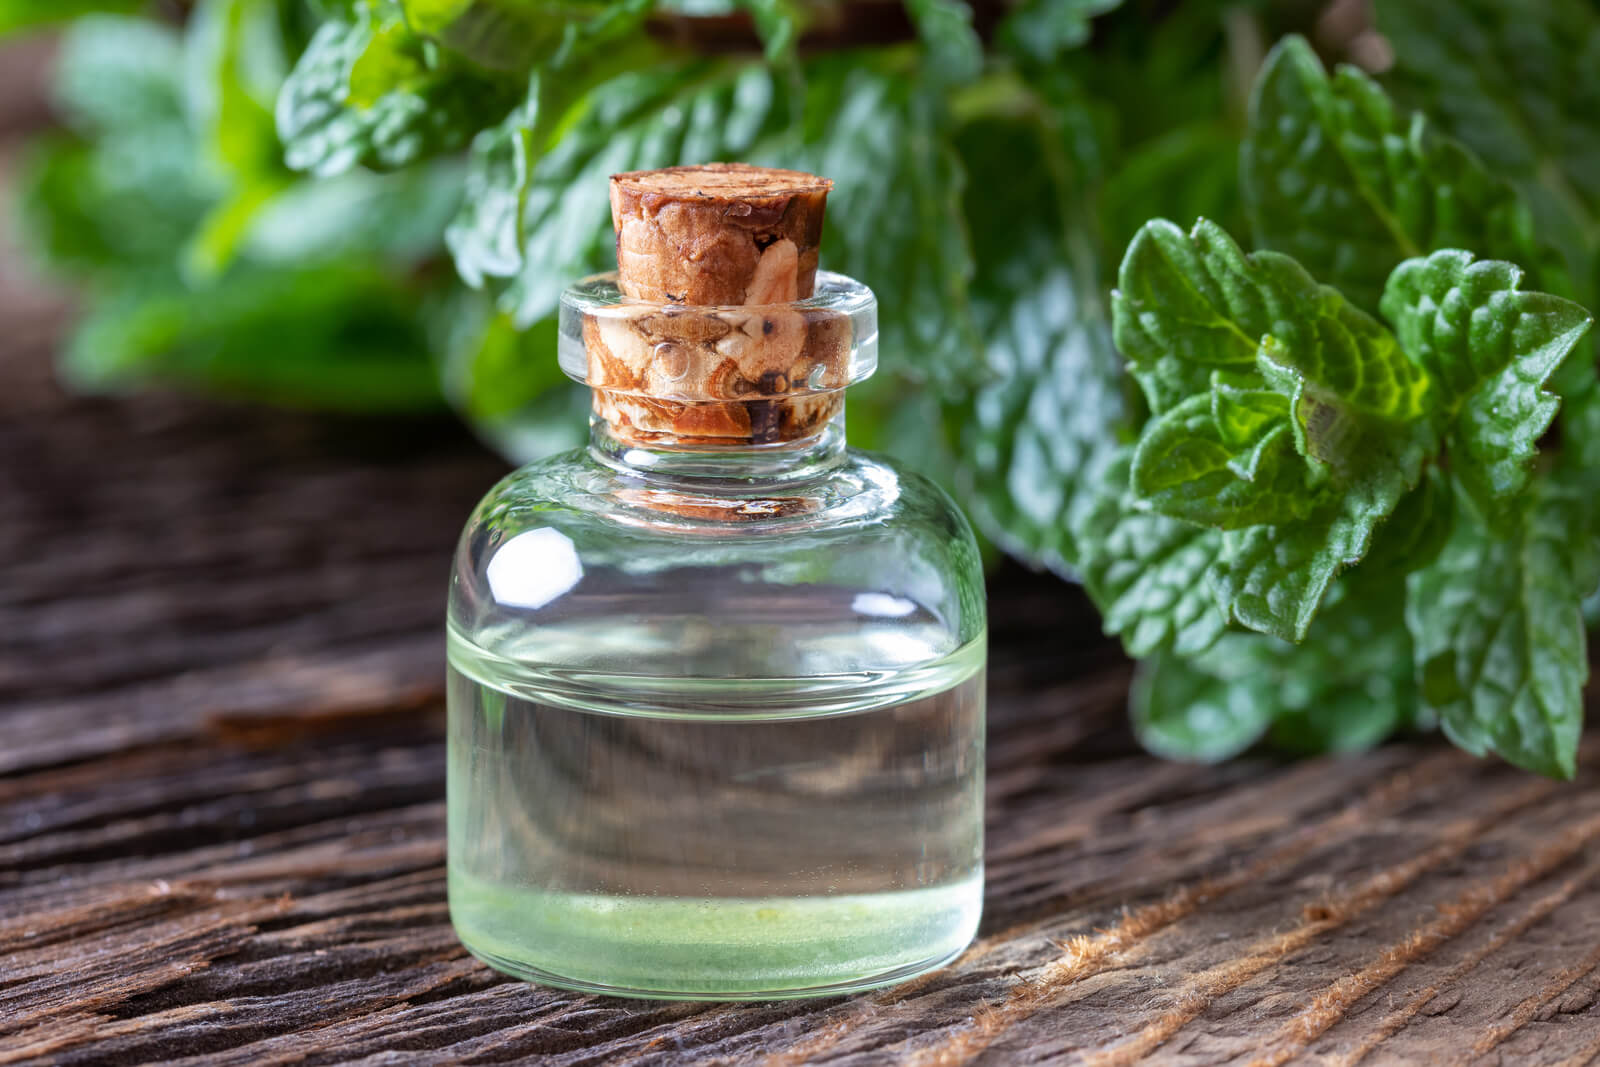 Peppermint oil may differ based on the creation process or the type of plant used. Some peppermint oil has a different chemical composition, and may be less effective at treating Candida infections as a result.